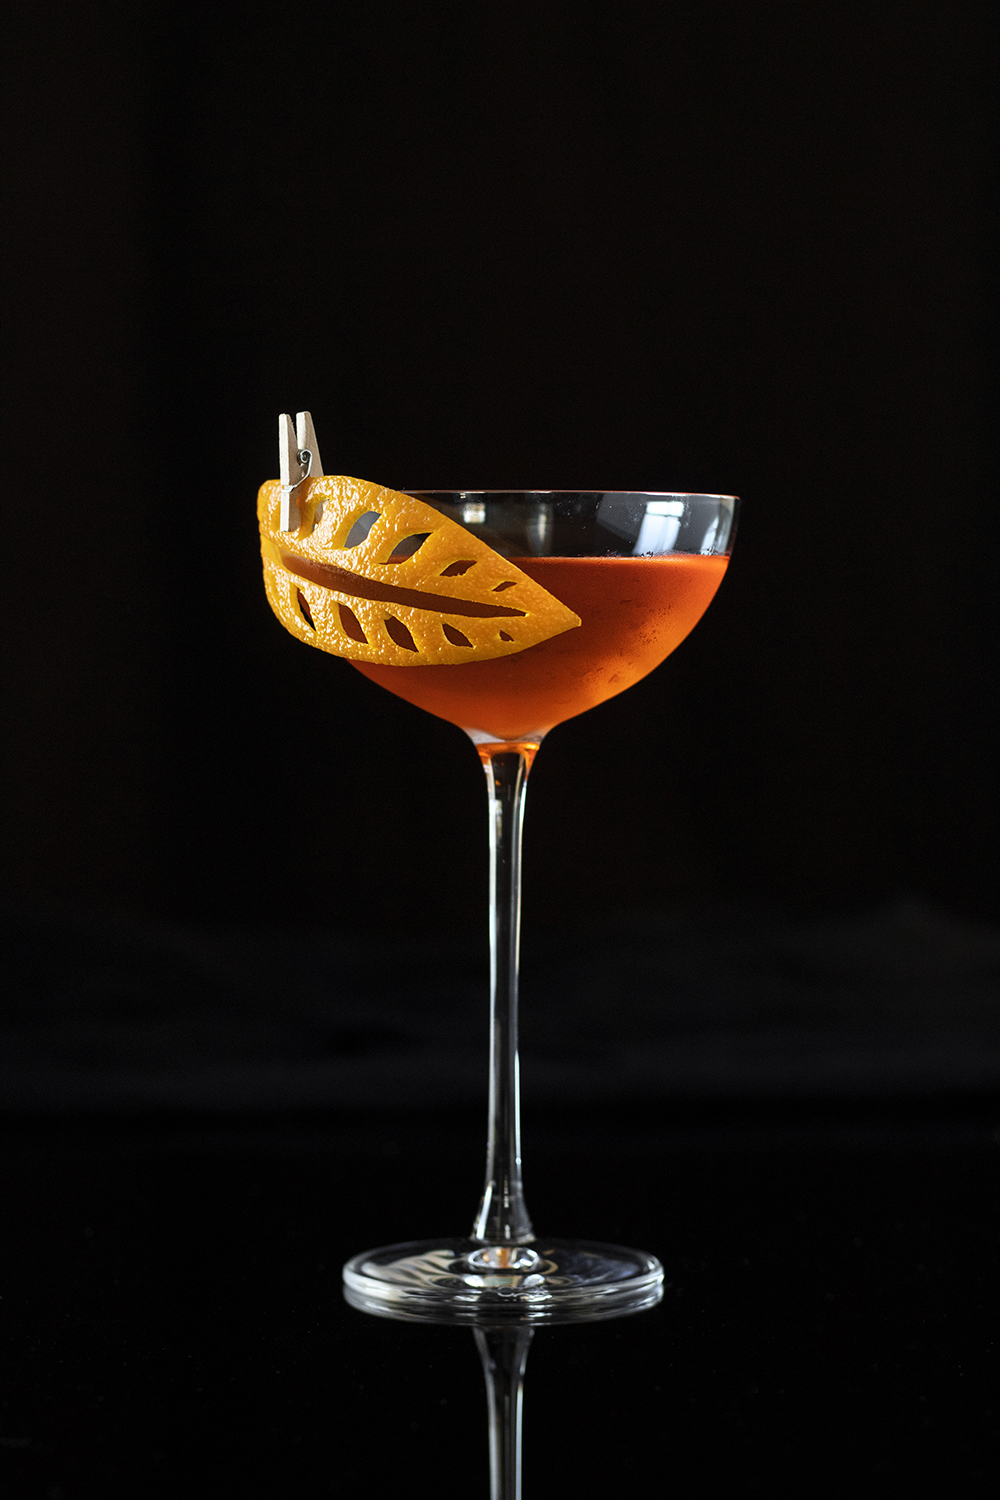 Sunset Strip cocktail featuring a carved orange peel garnish.